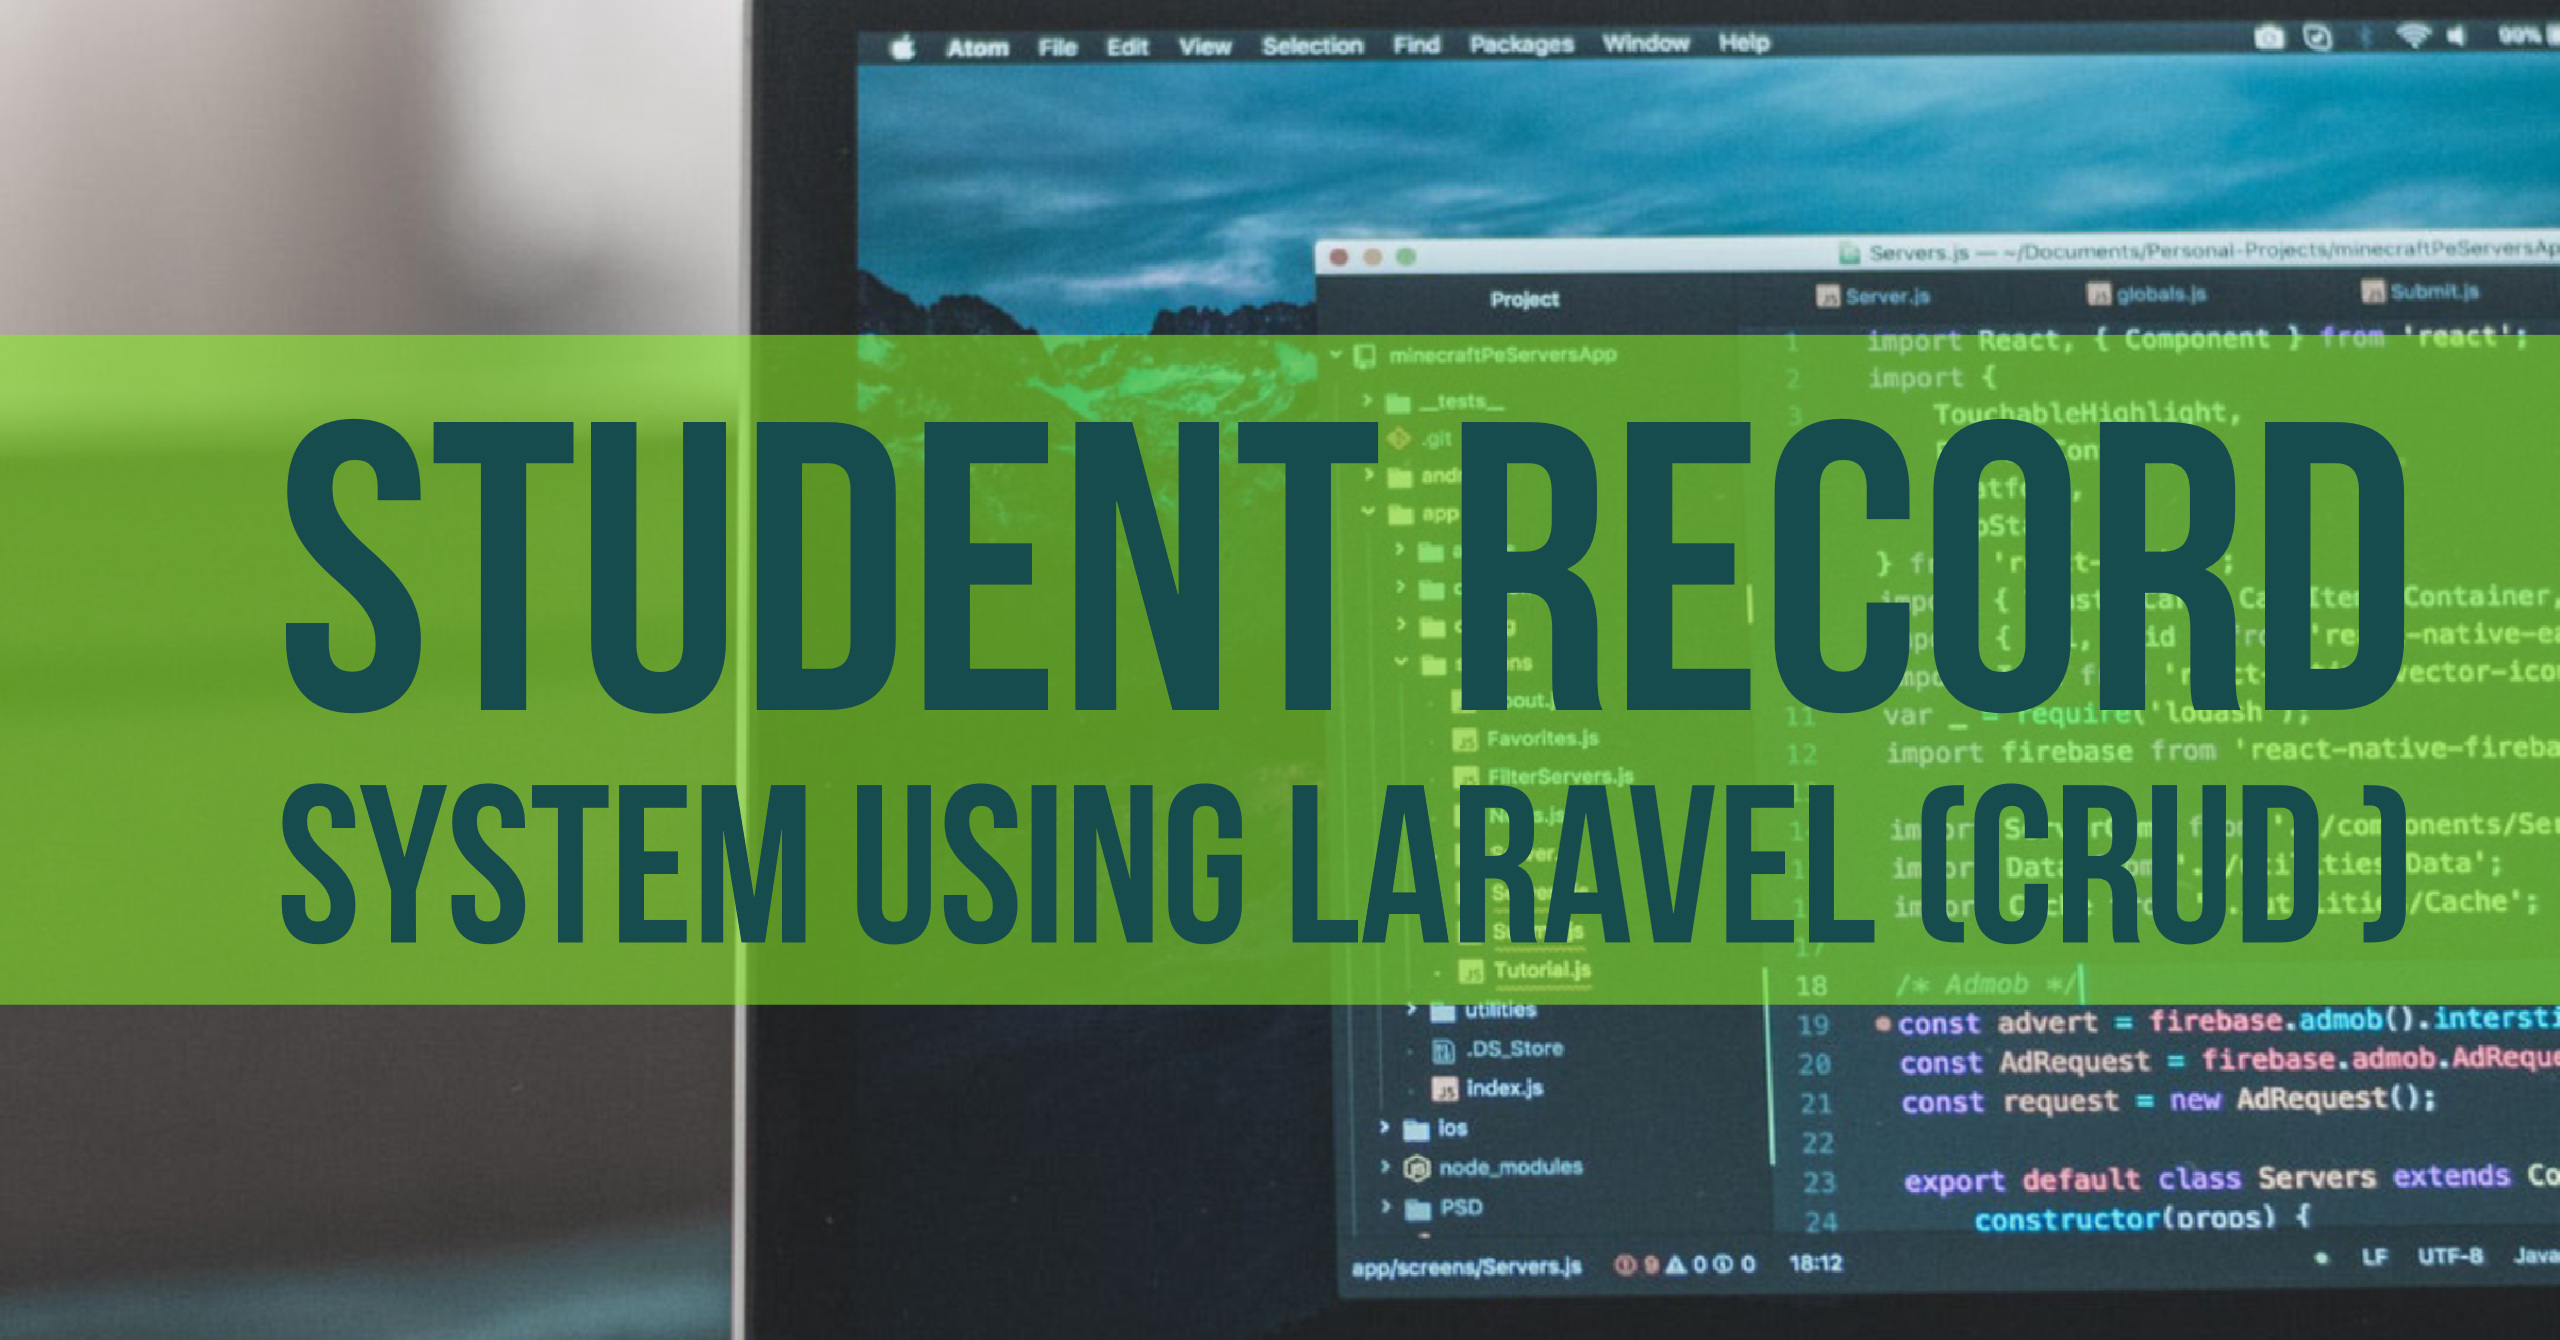 Student Record System  Using LARAVEL (CRUD)